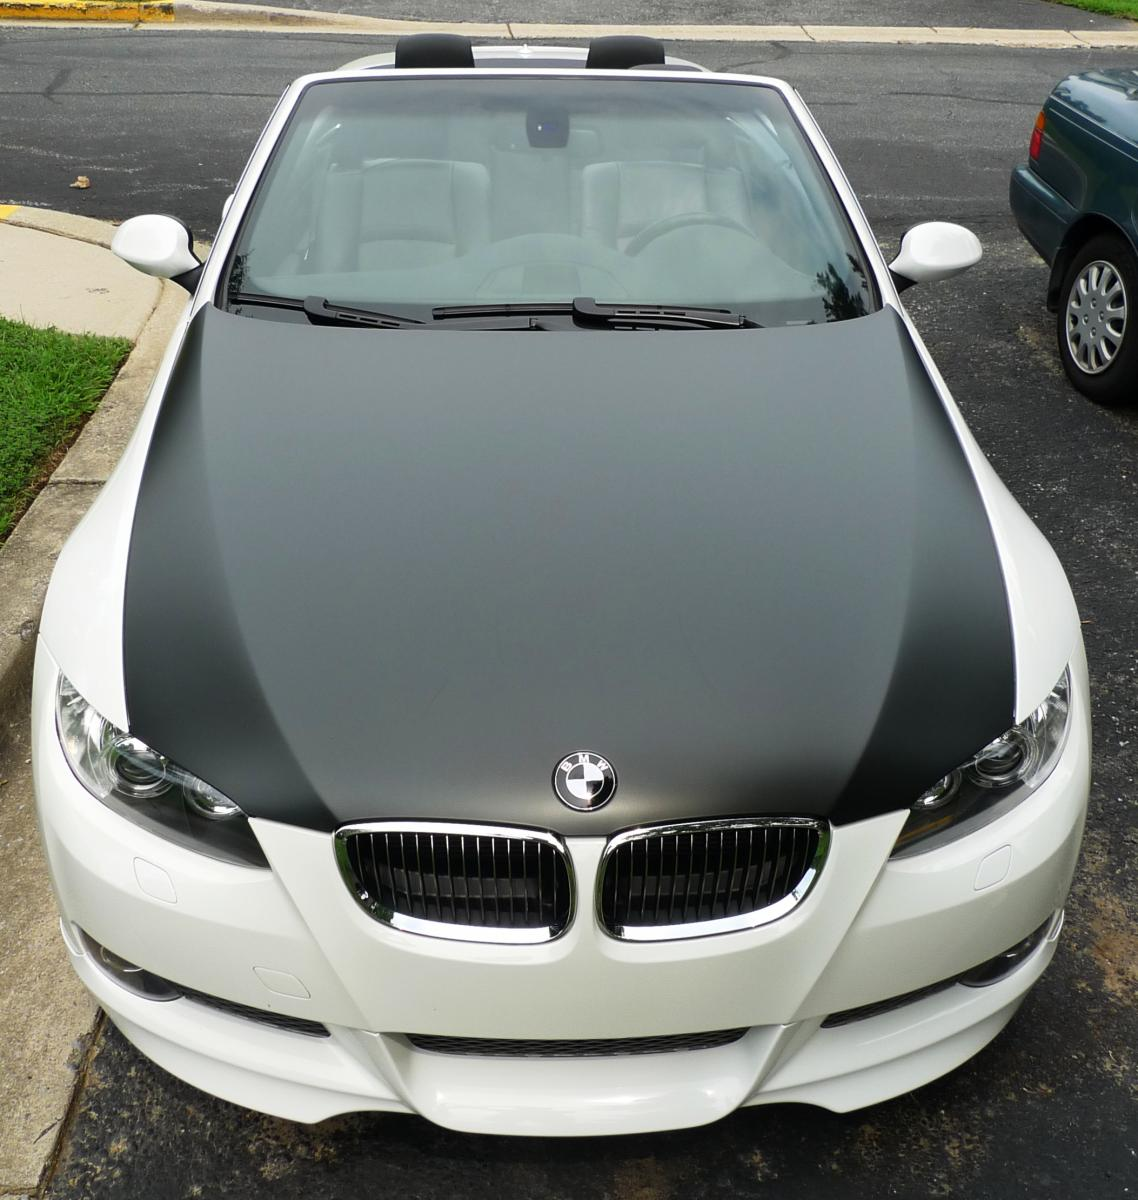 Wrapped My Own Hood With 3m 180 Cv3 Matte Black